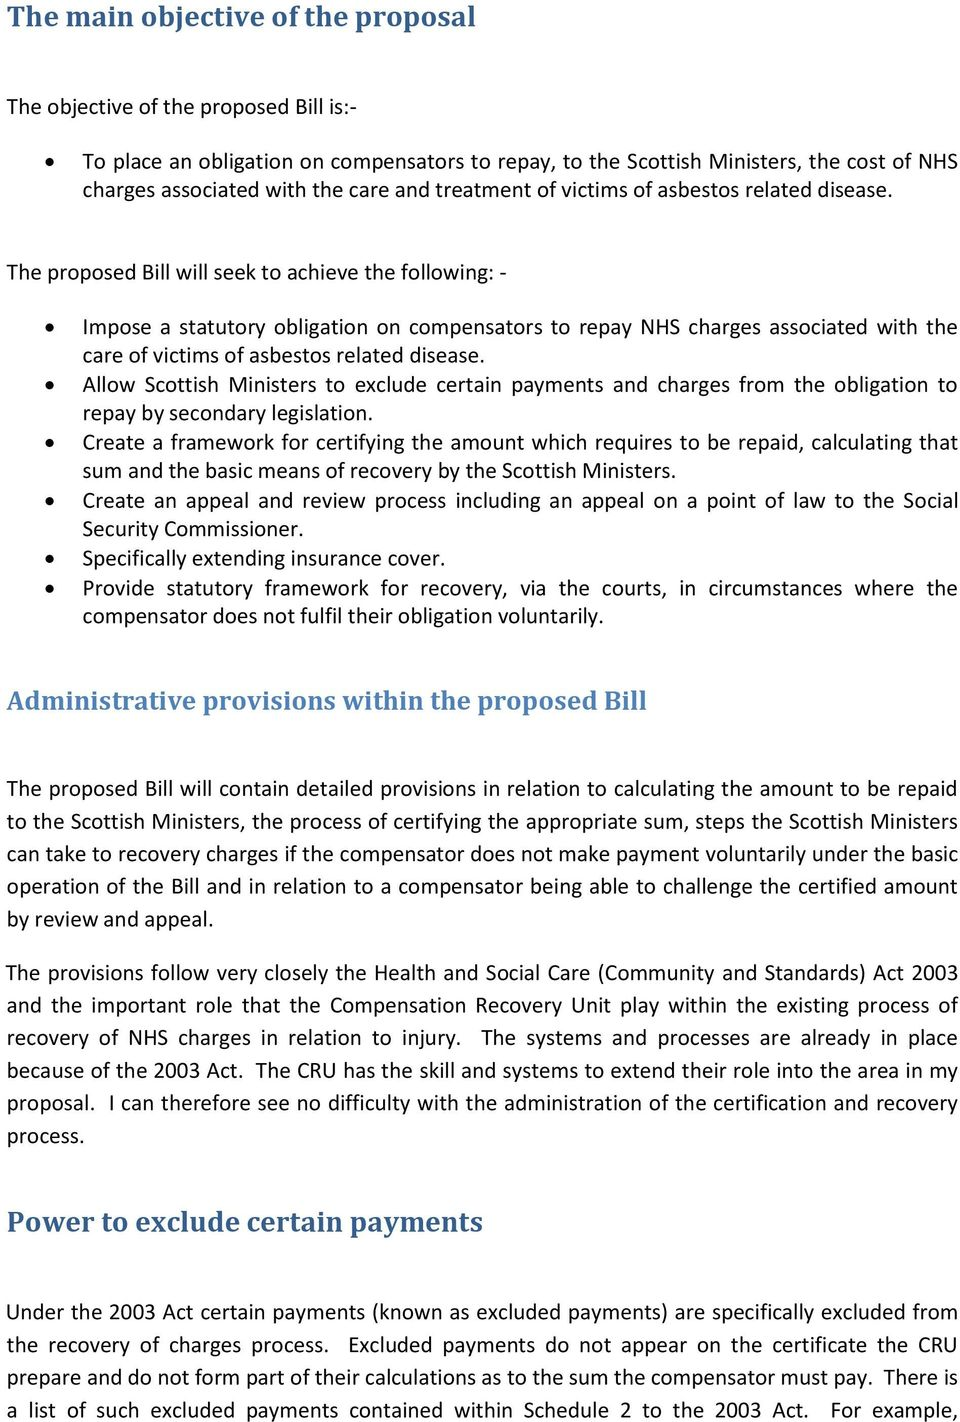 The proposed Bill will seek to achieve the following: - Impose a statutory obligation on compensators to repay NHS charges associated with the care of victims of asbestos related disease.